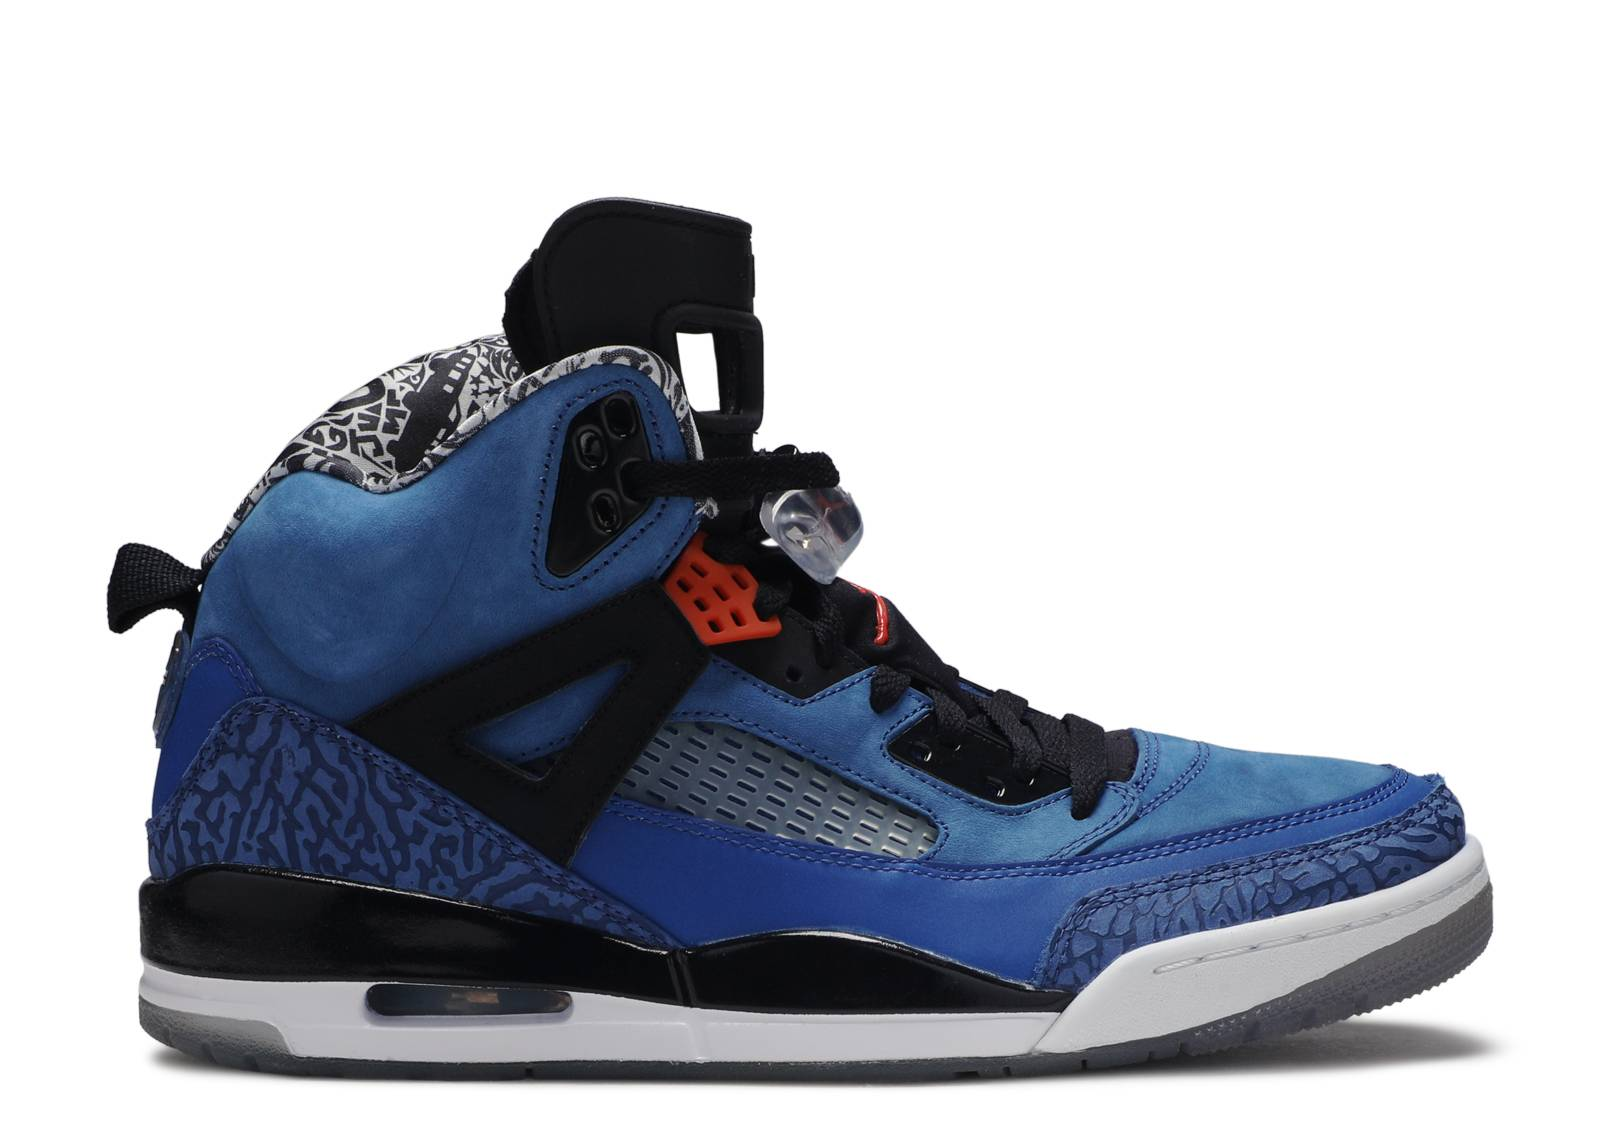 wholesale dealer 72413 225b3 jordan spiz ike